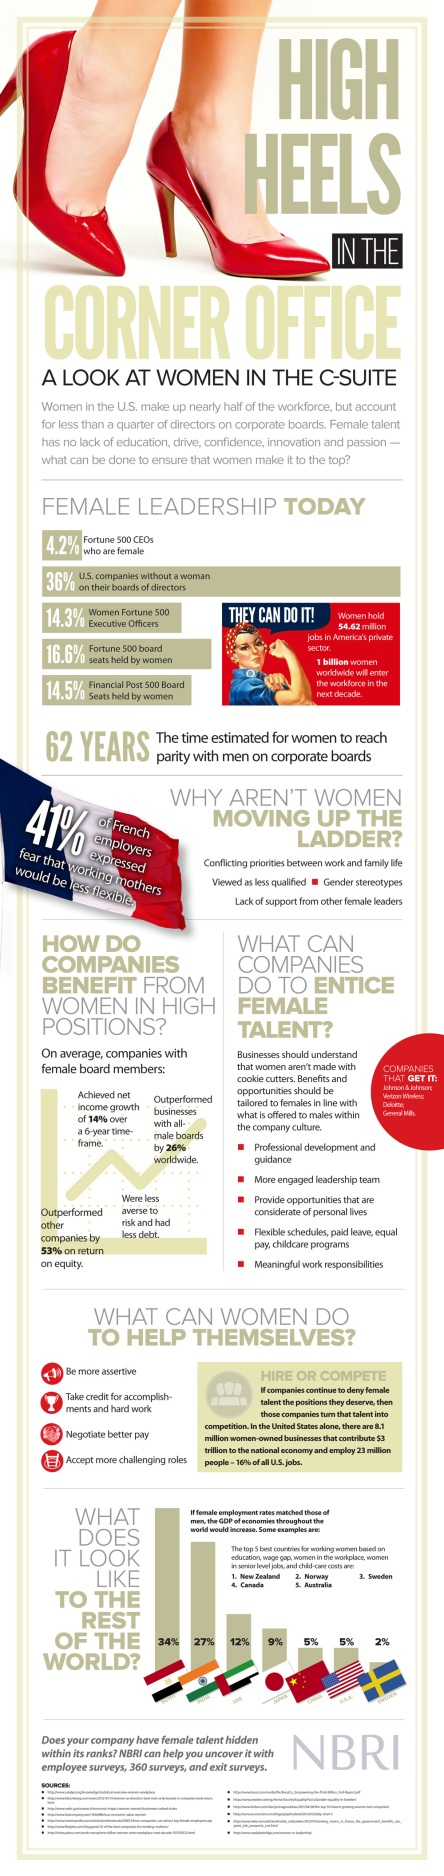 nbri-infographic-femaleleadership